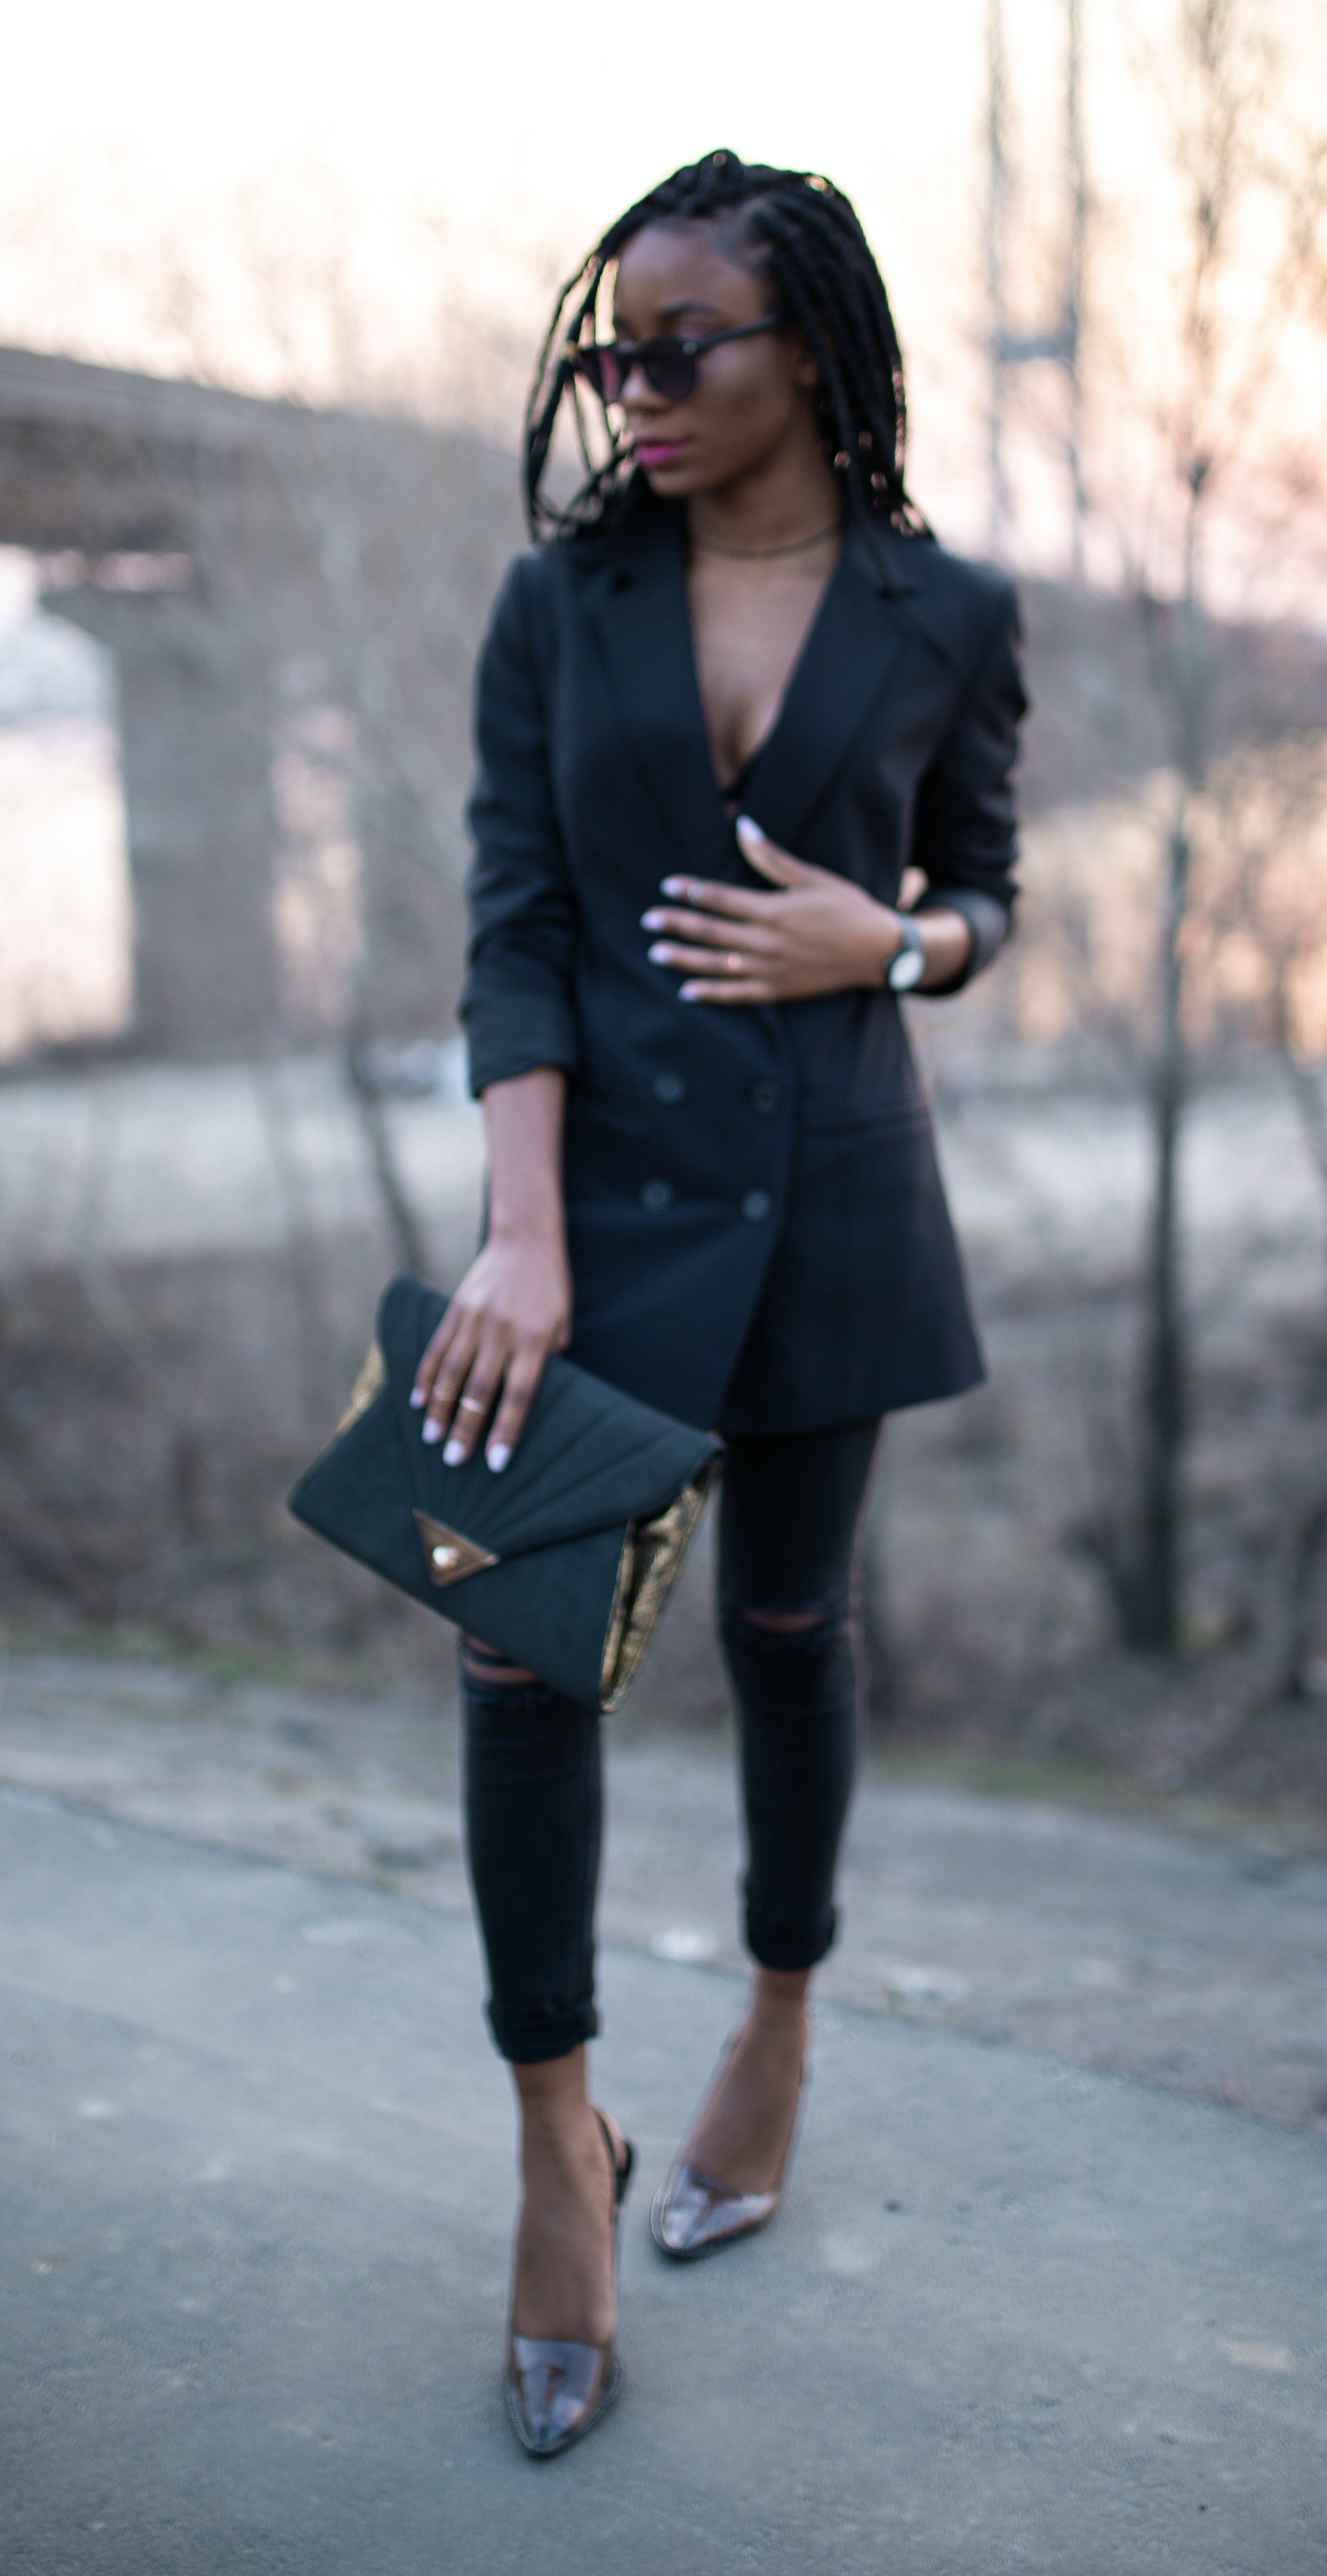 Free stock photo of african girl, all black outfit, beautiful black model, beautiful woman